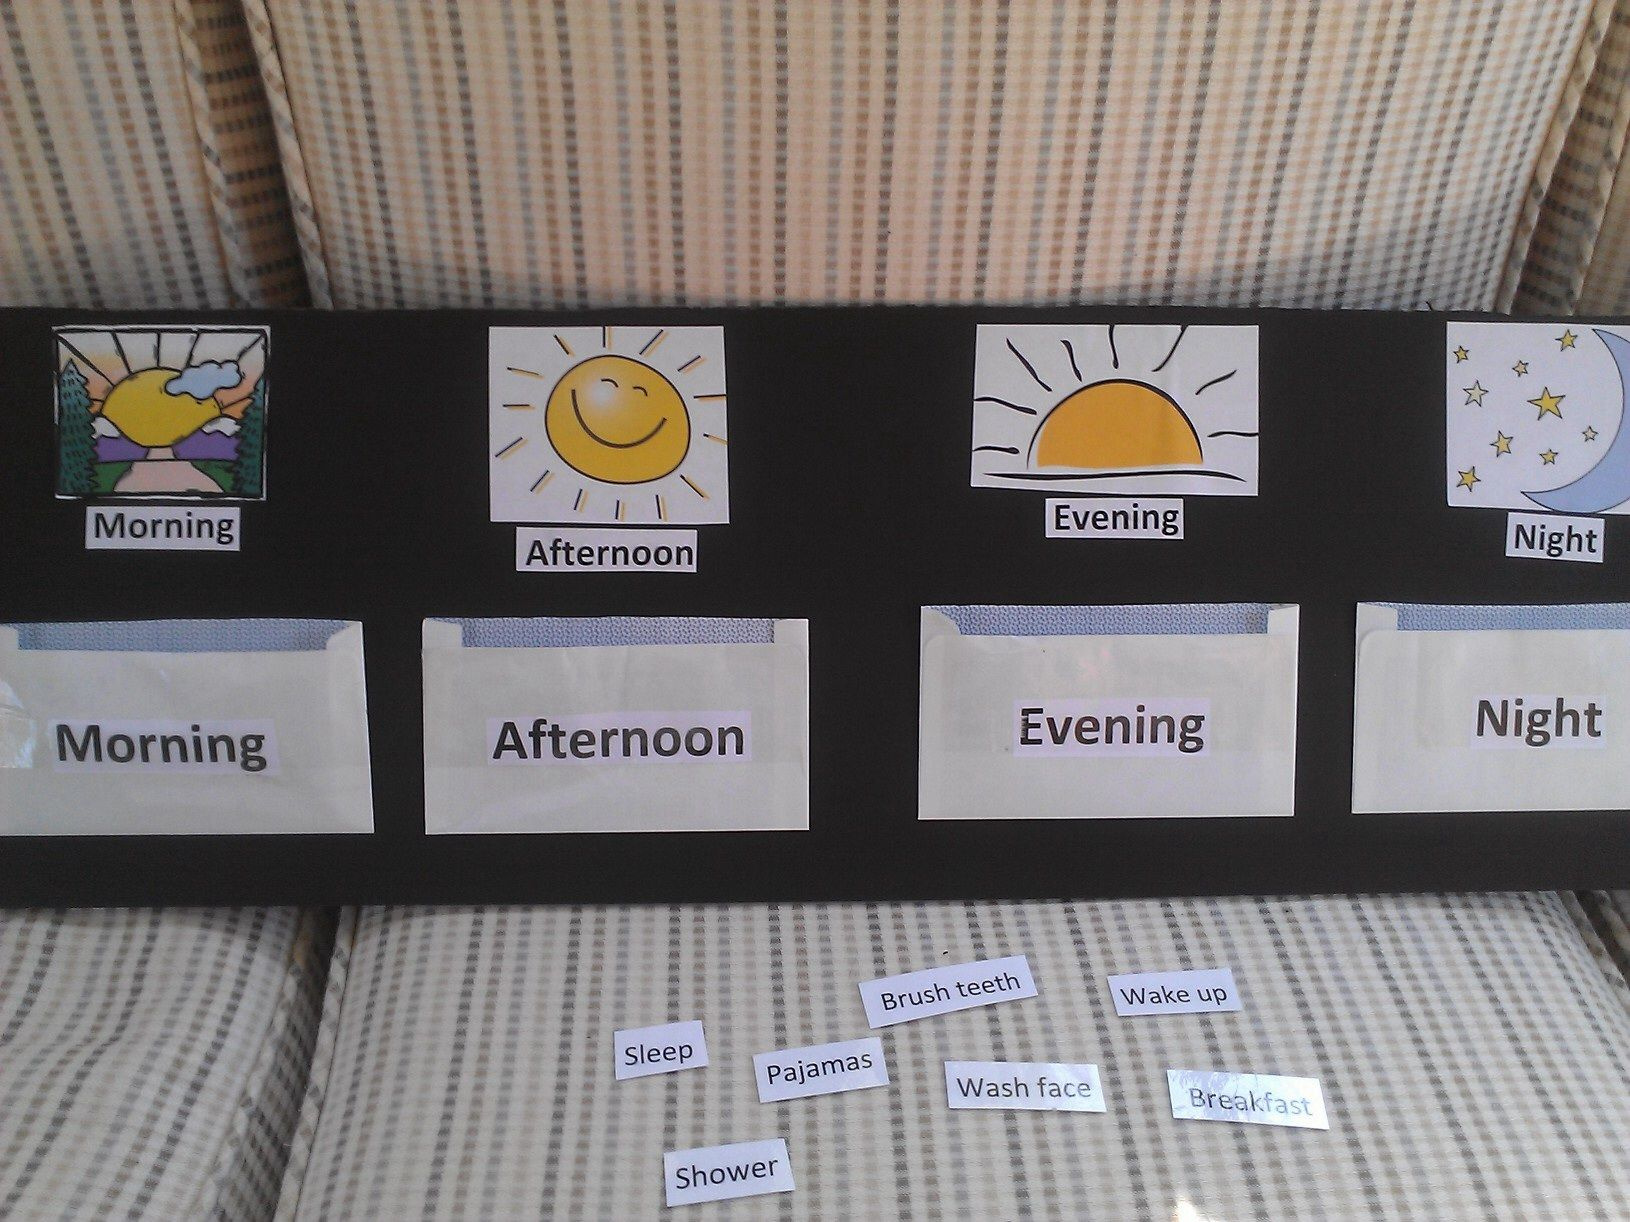 Resultado de imagen de in the morning in the afternoon in the evening at night games